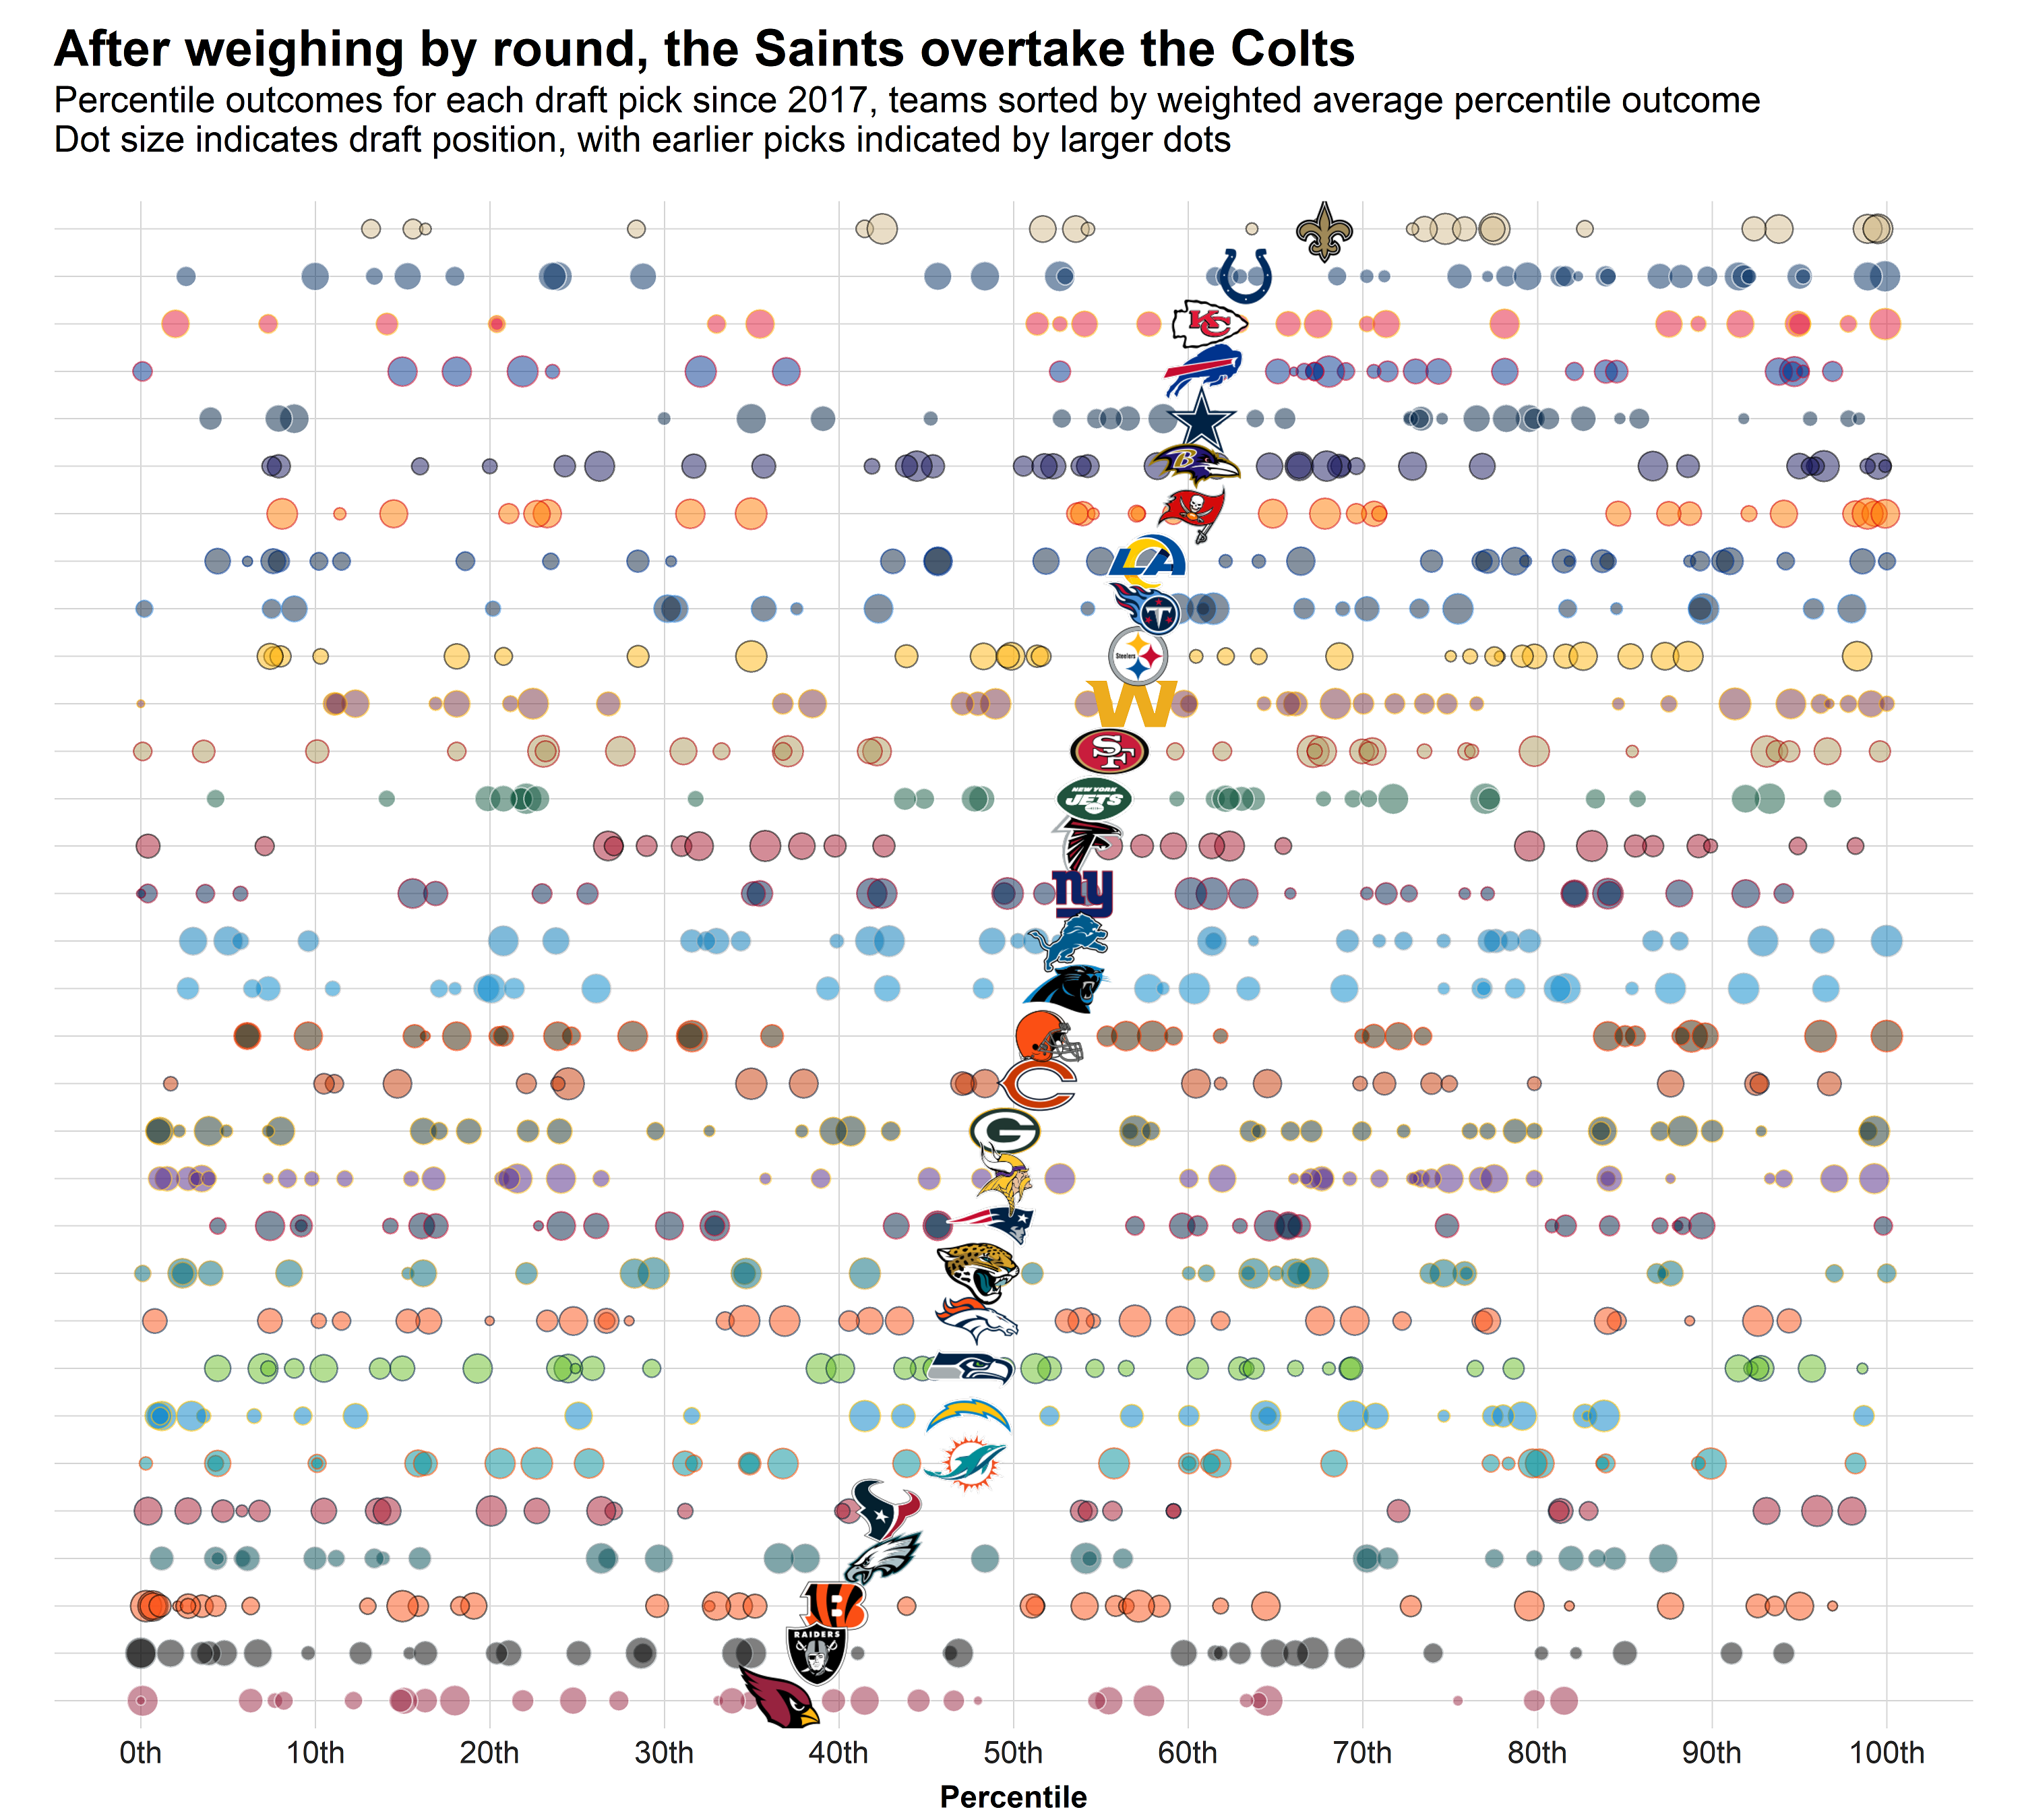 teams_percentile_w_positions_round_weigh